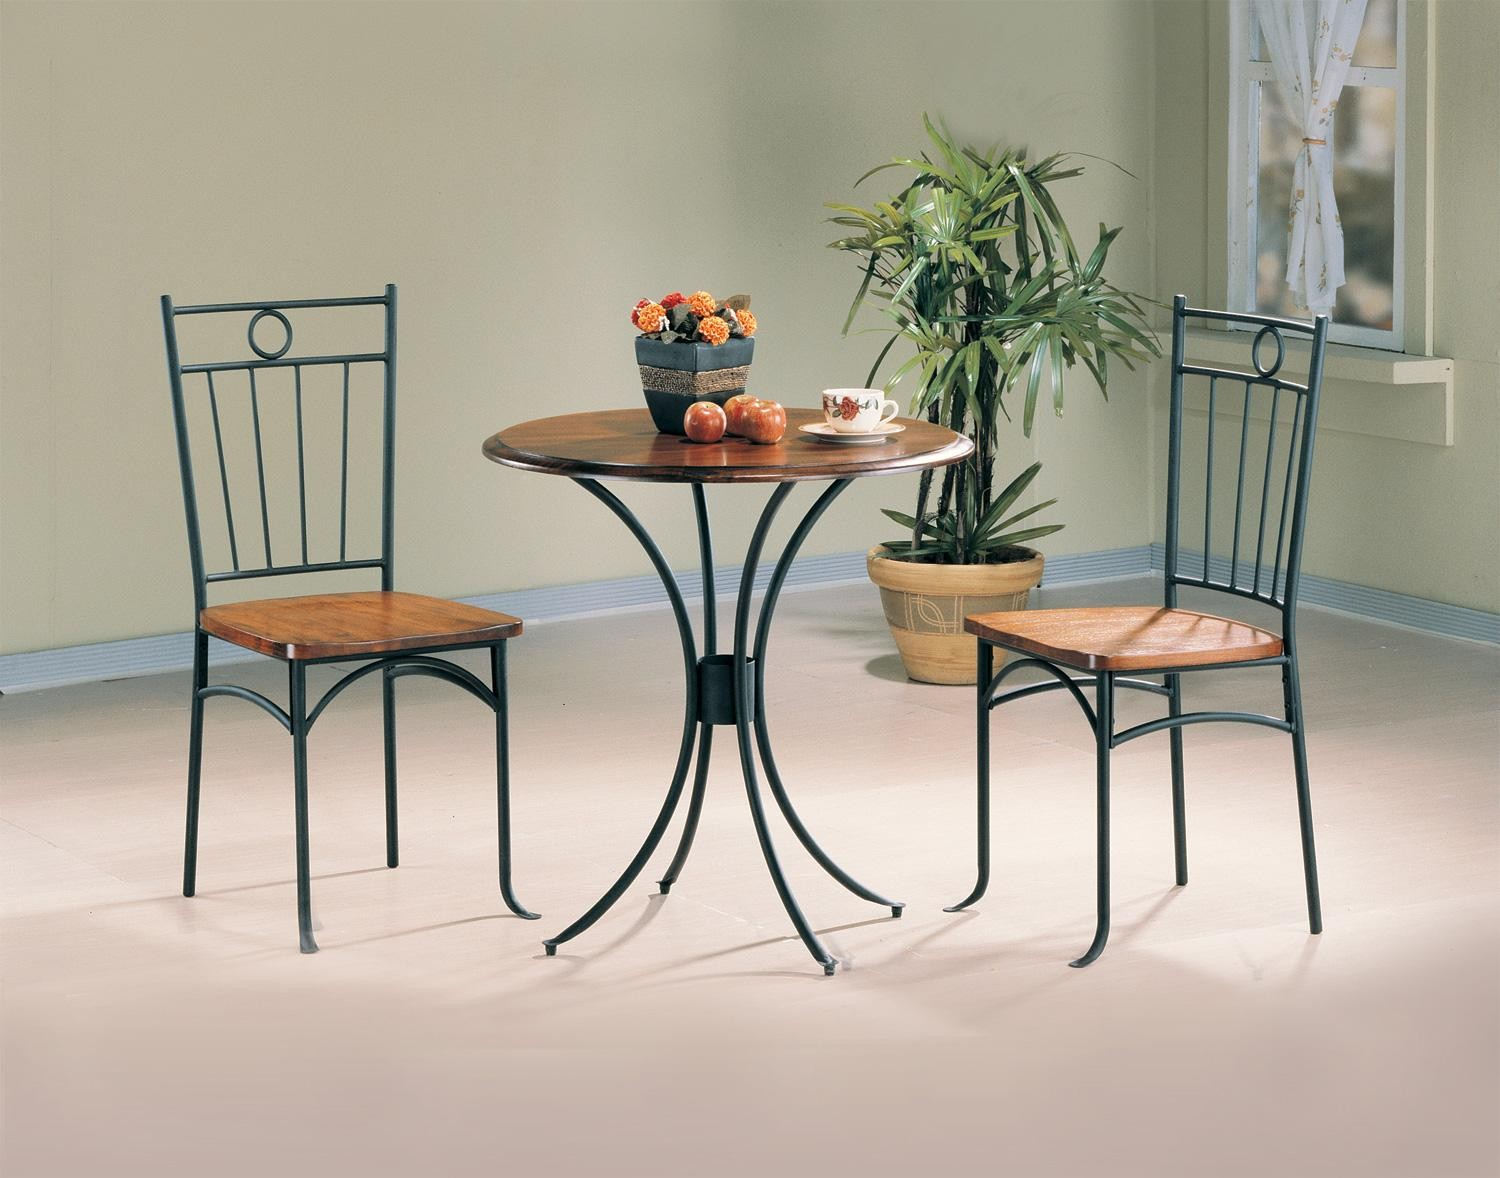 Black Bistro 3 Pcs Round Dining Table Set 5939 From Coaster (5939) |  Coleman Furniture